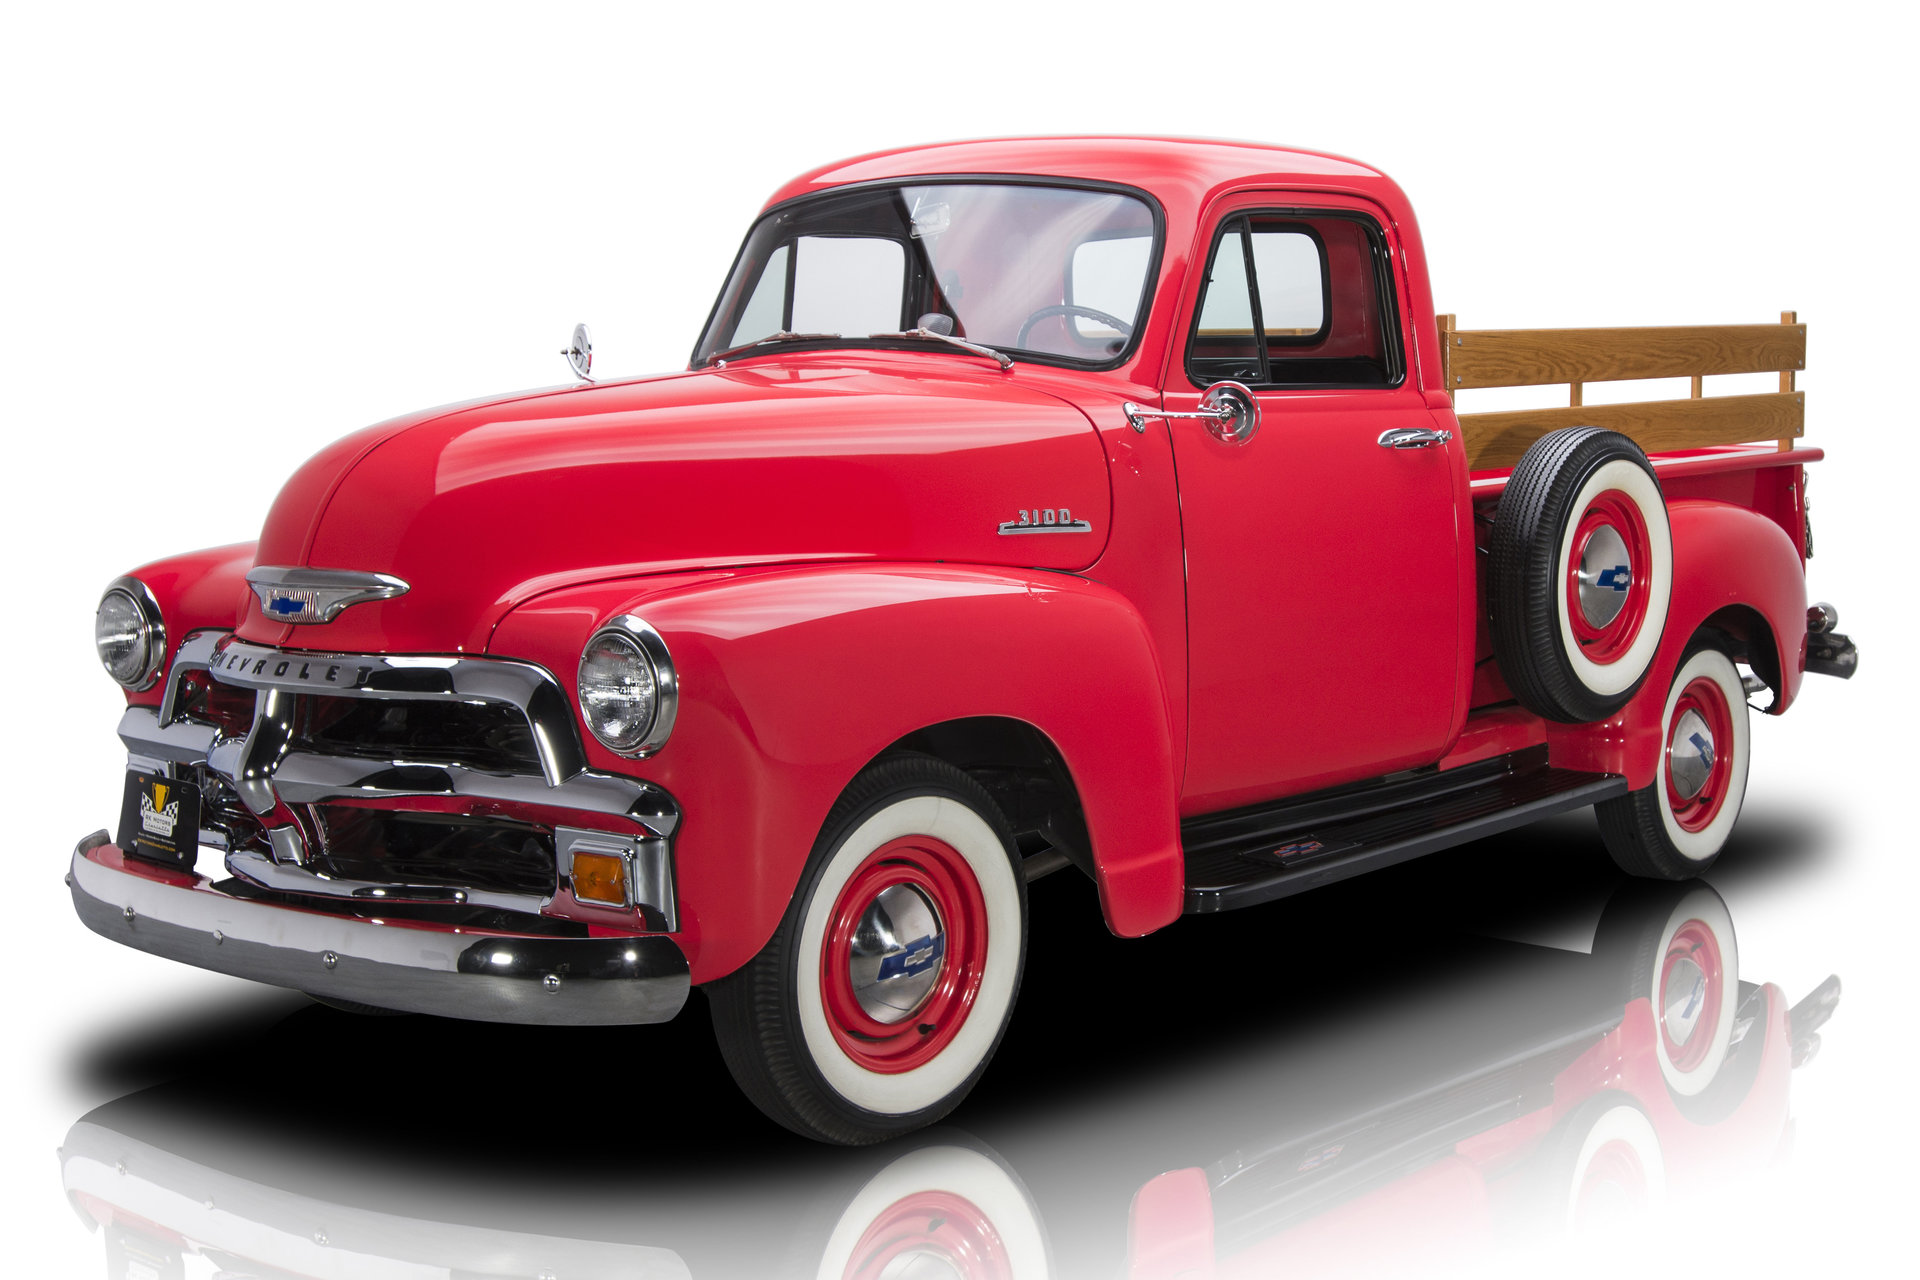 136046 1954 Chevrolet 3100 Pickup Truck | RK Motors Classic and ...